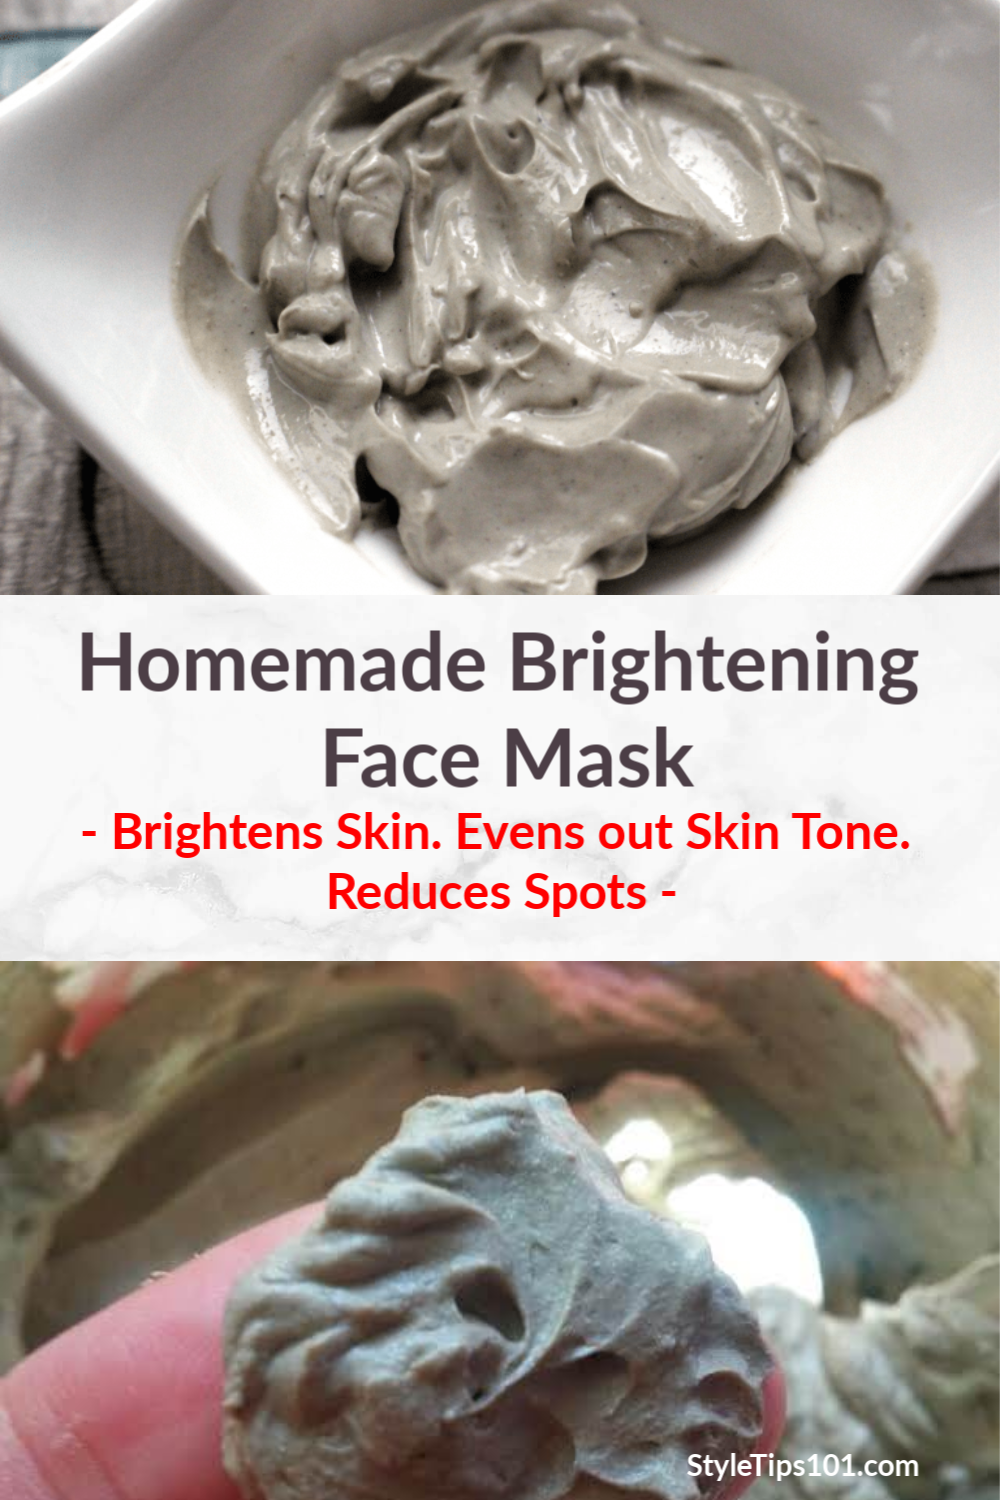 This homemade brightening face mask will work hard to slough off dead skin cells, hydrate